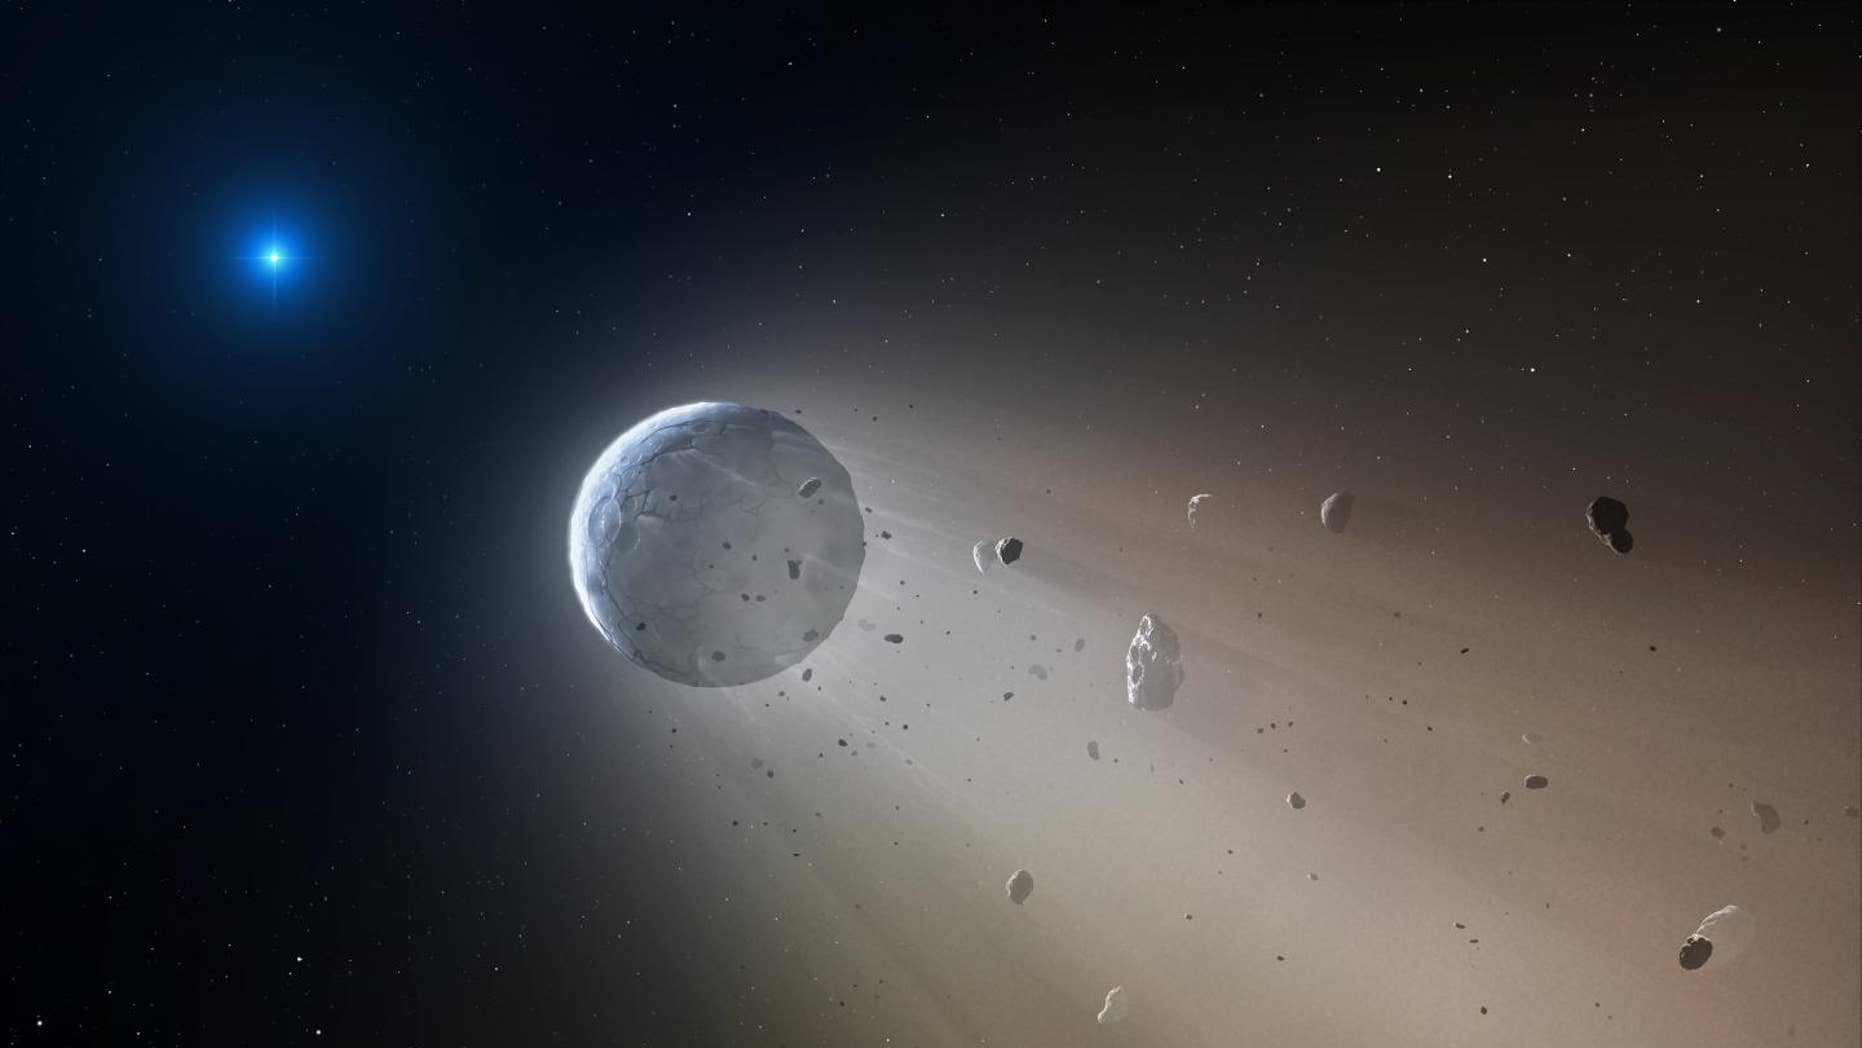 Ceres-Like Asteroid Artist's Conception